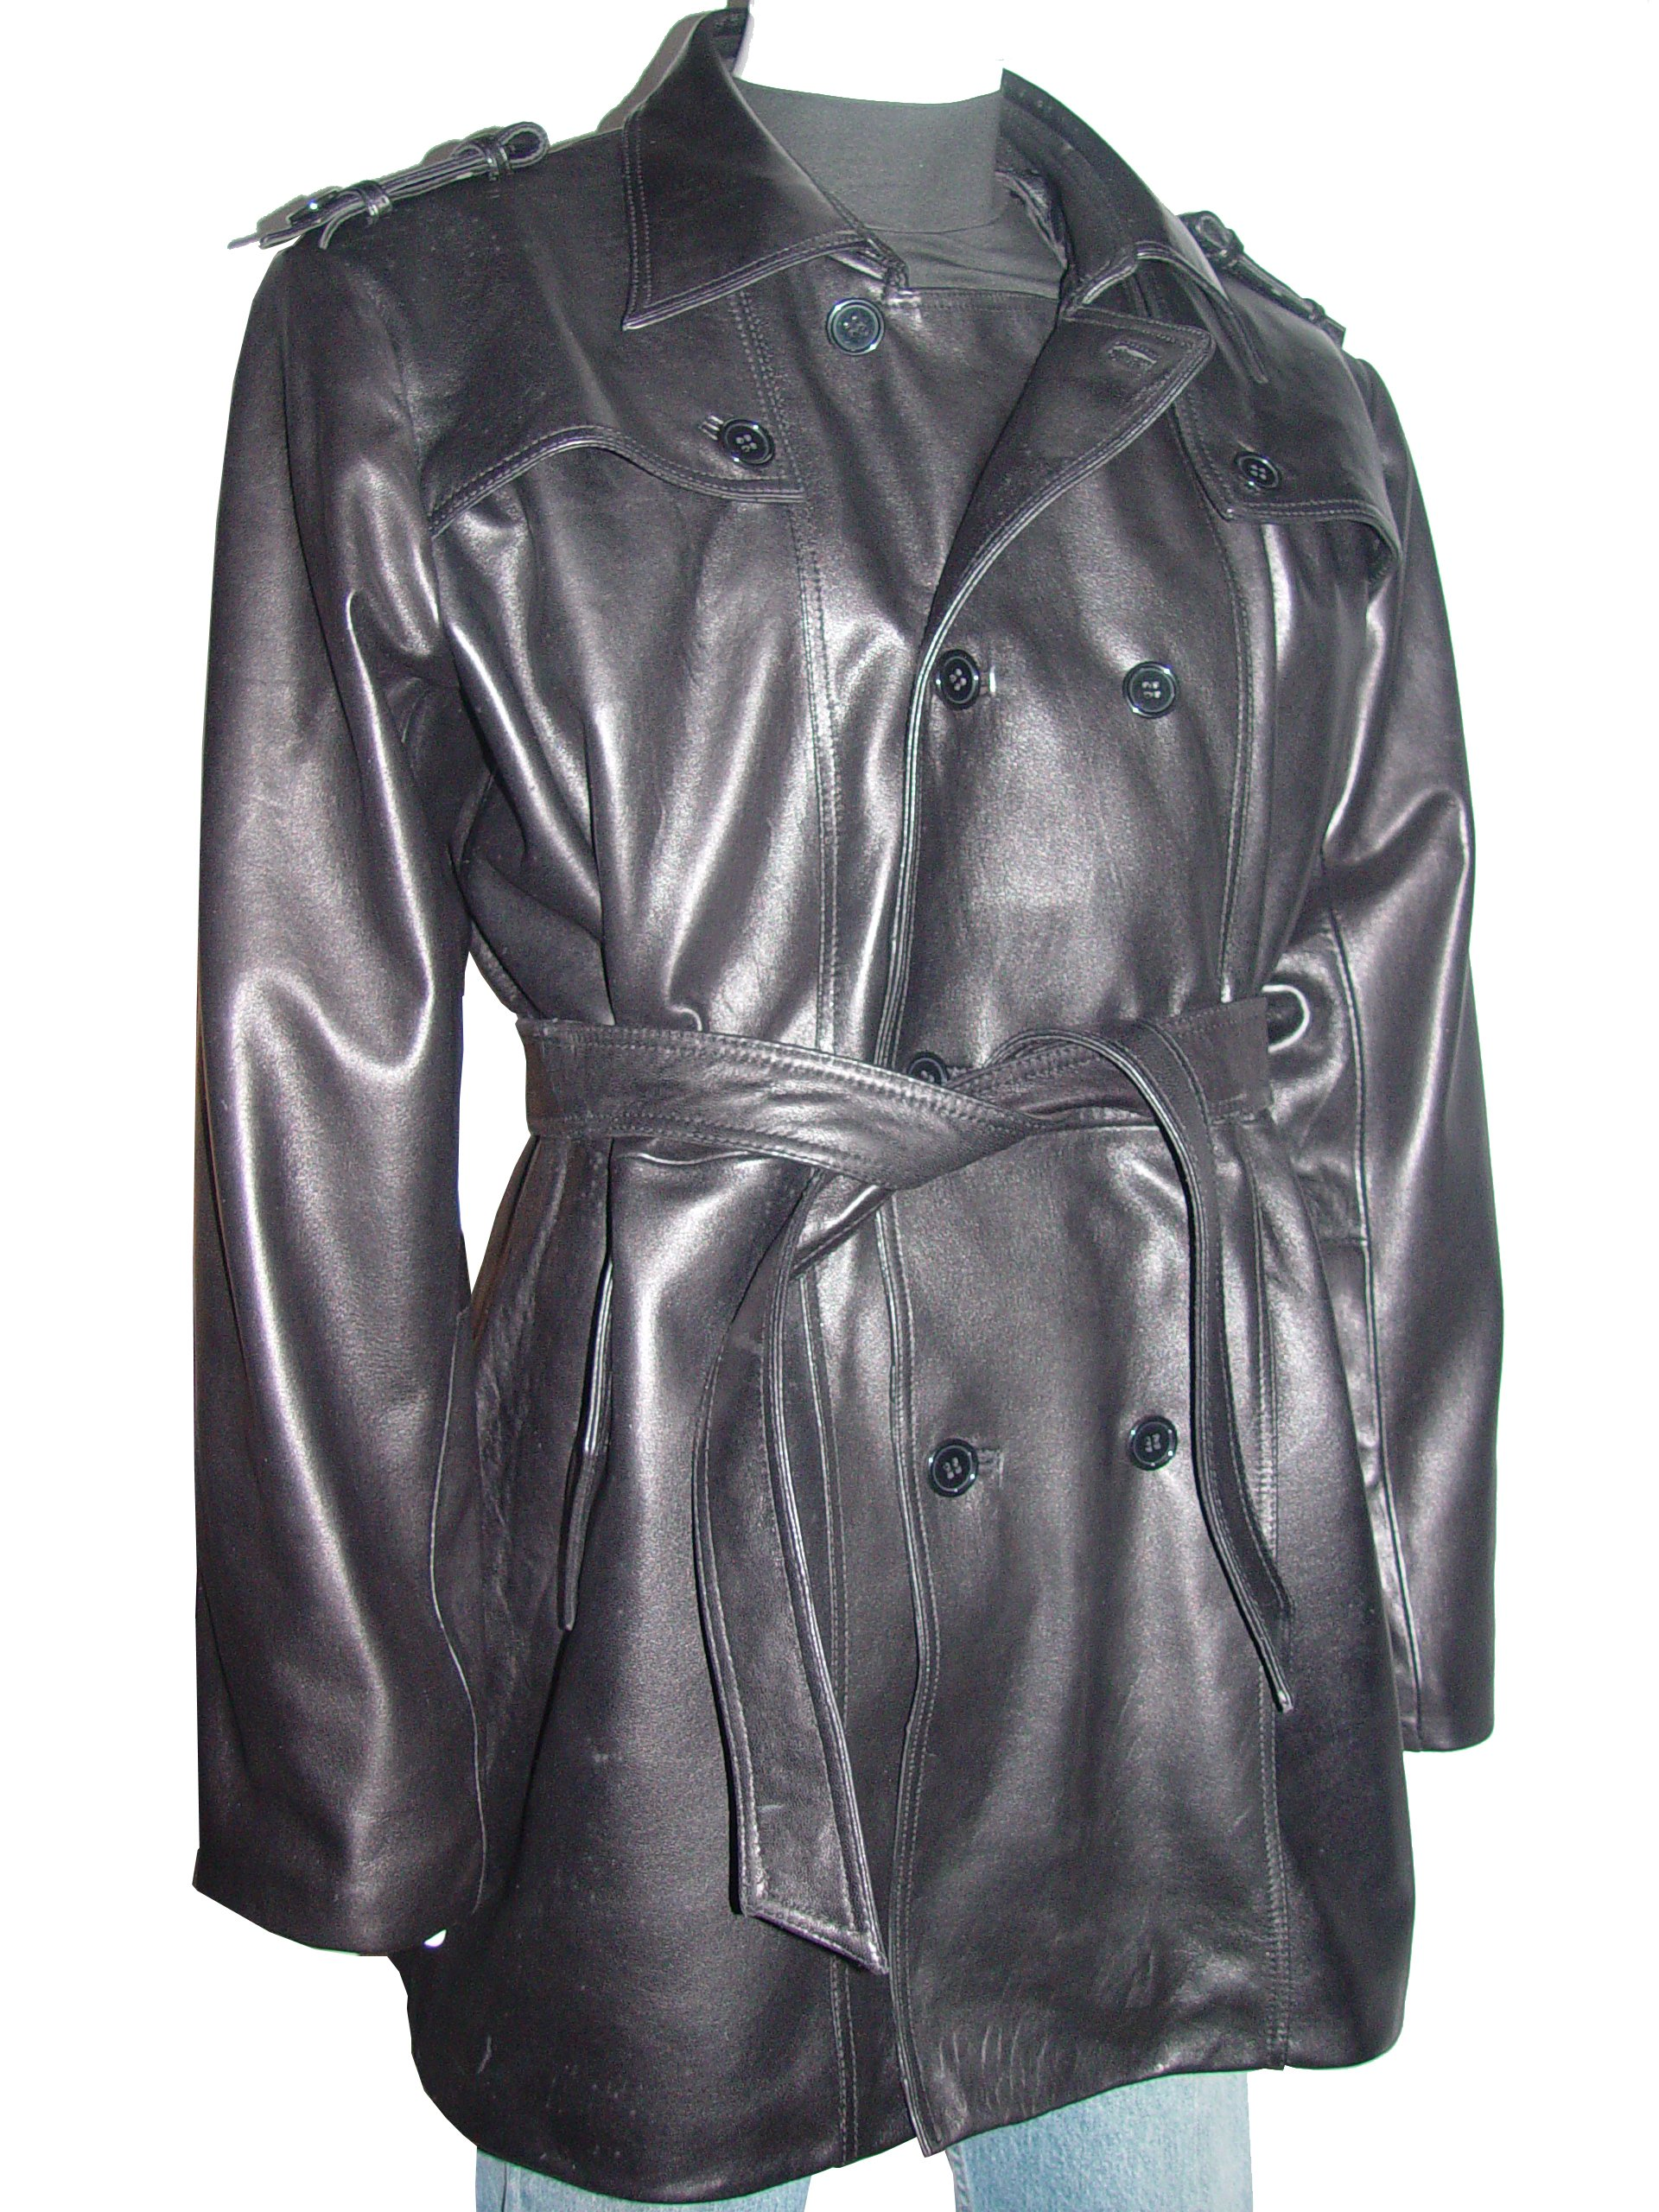 Nettailor 2041 Men Fine Clean Classic Black Leather Trench Coat